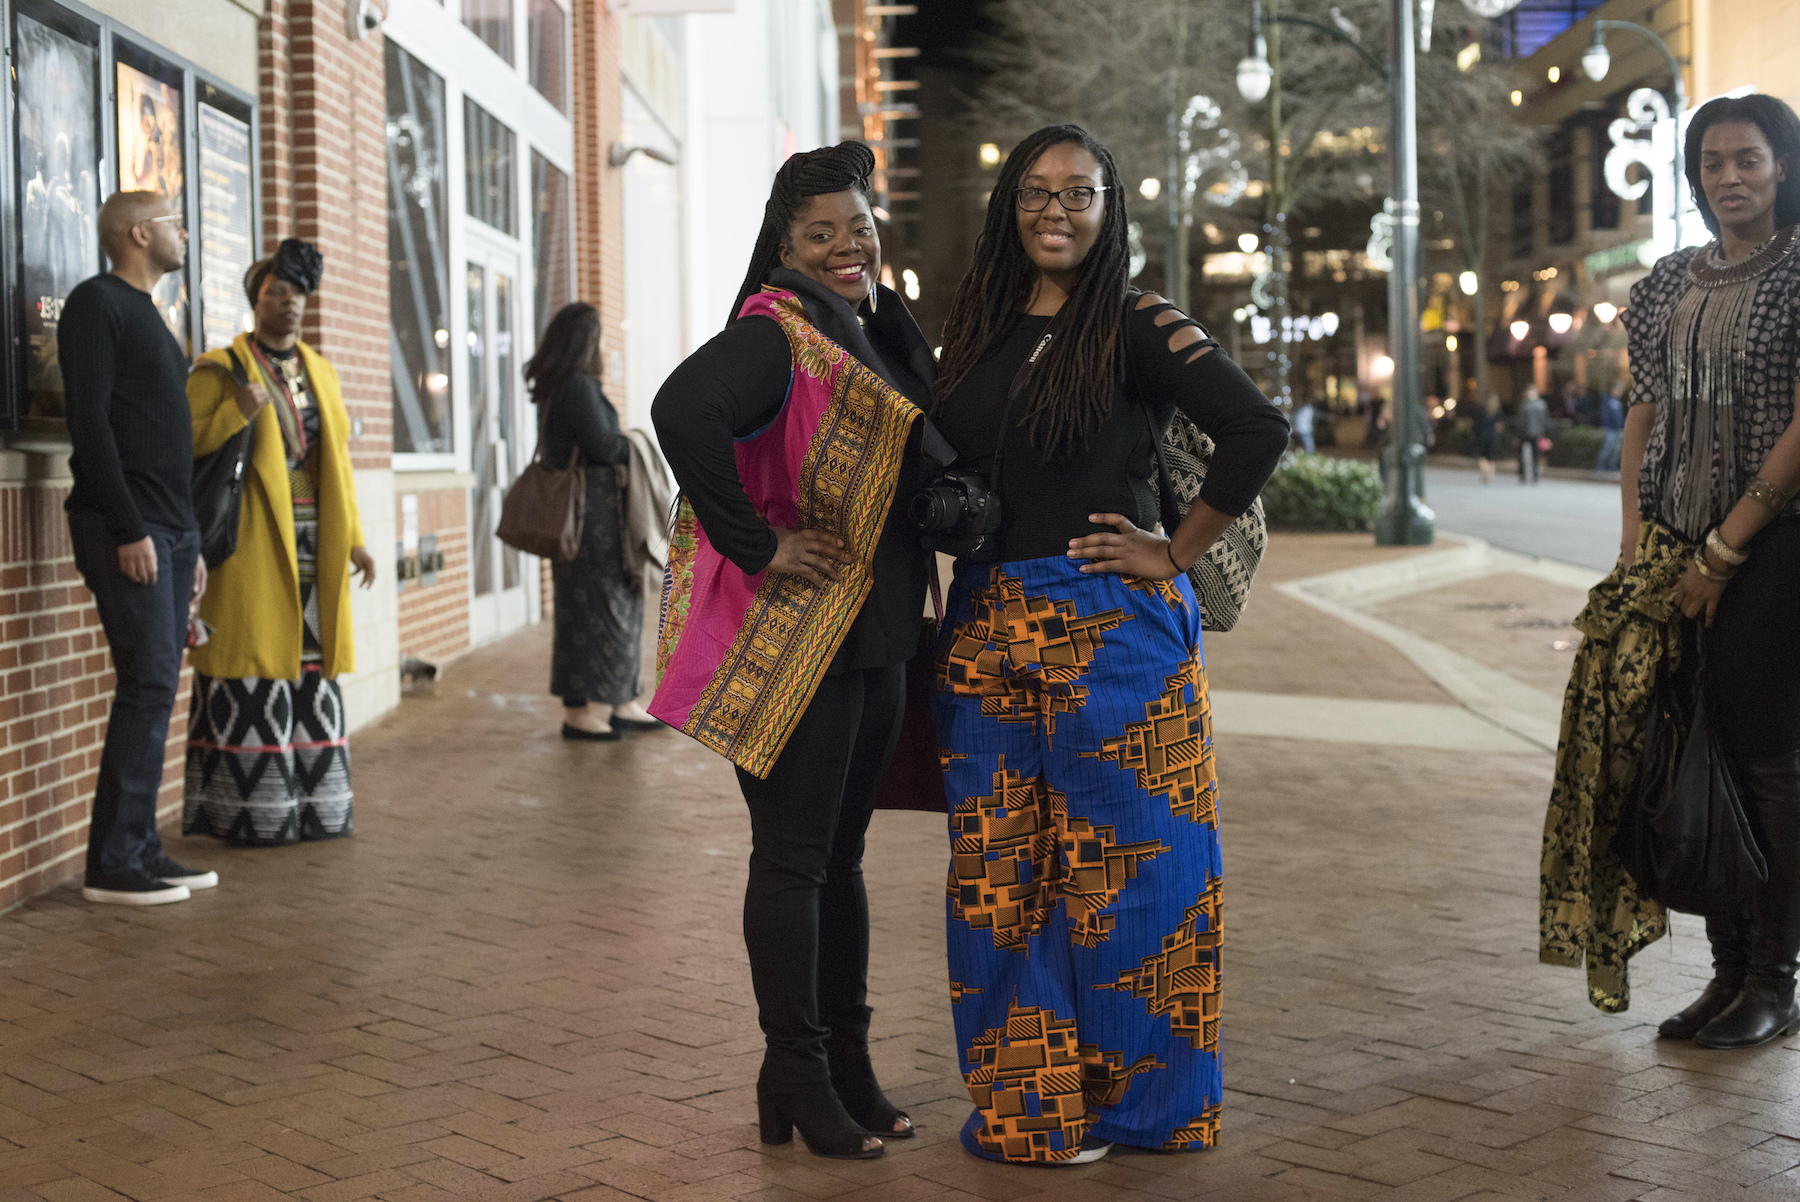 "<div class=""meta image-caption""><div class=""origin-logo origin-image ap""><span>AP</span></div><span class=""caption-text"">Simone Wiliams, left, and Chanel Jaali, dressed in Wakanda-inspired attire, pose for a portrait before seeing Black Panther in Silver Spring, Md., Thursday, Feb. 15, 2018. (AP Photo/Sait Serkan Gurbuz)</span></div>"